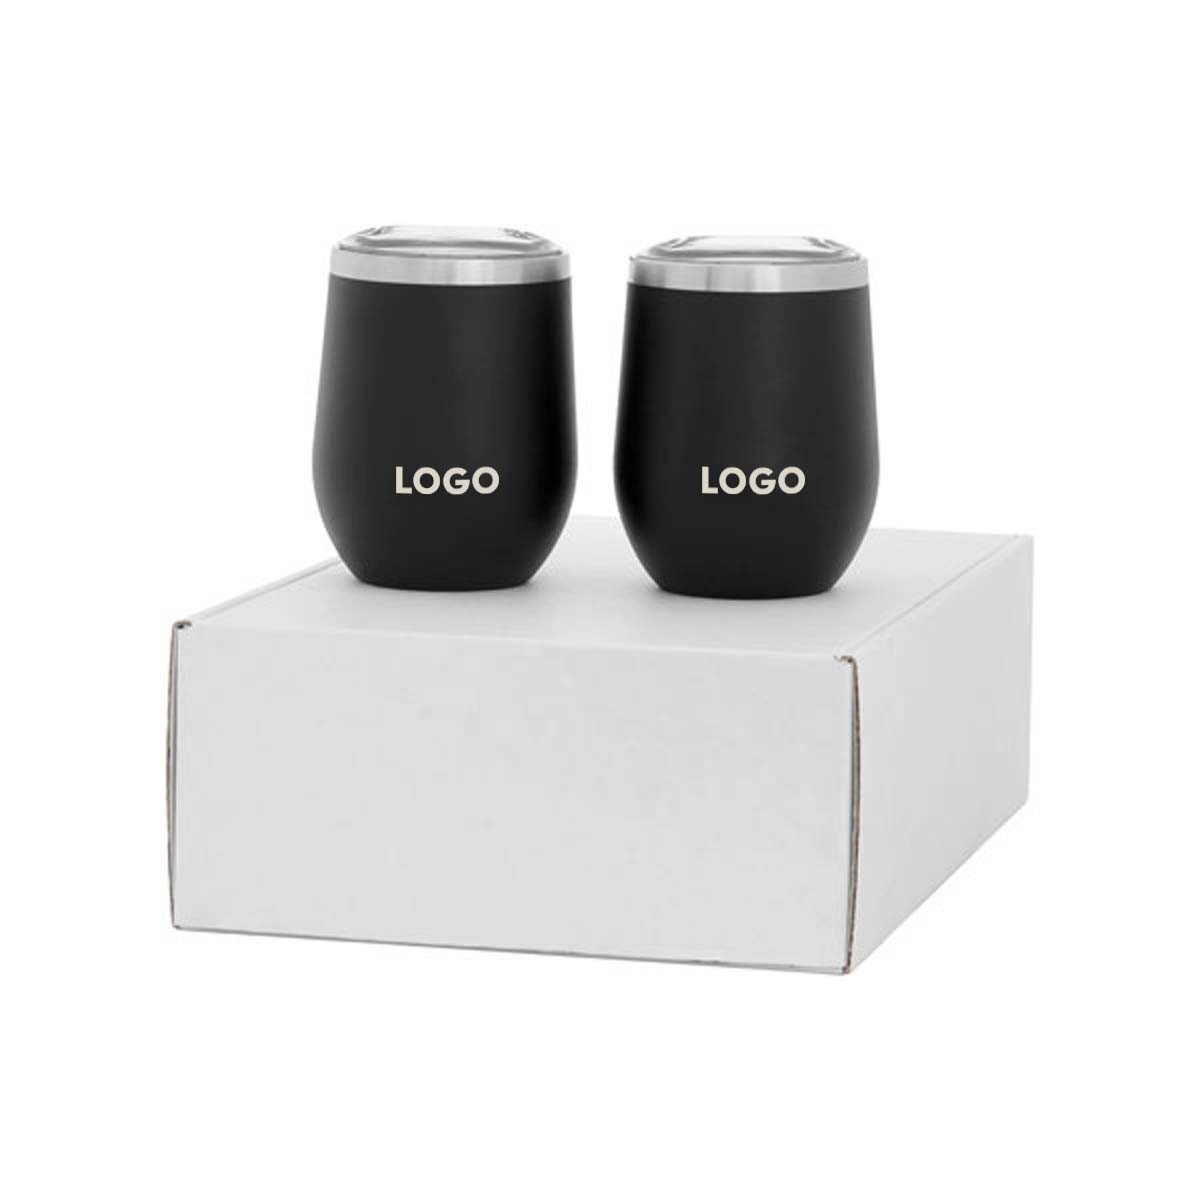 313759 warren tumbler set one color print on each tumbler